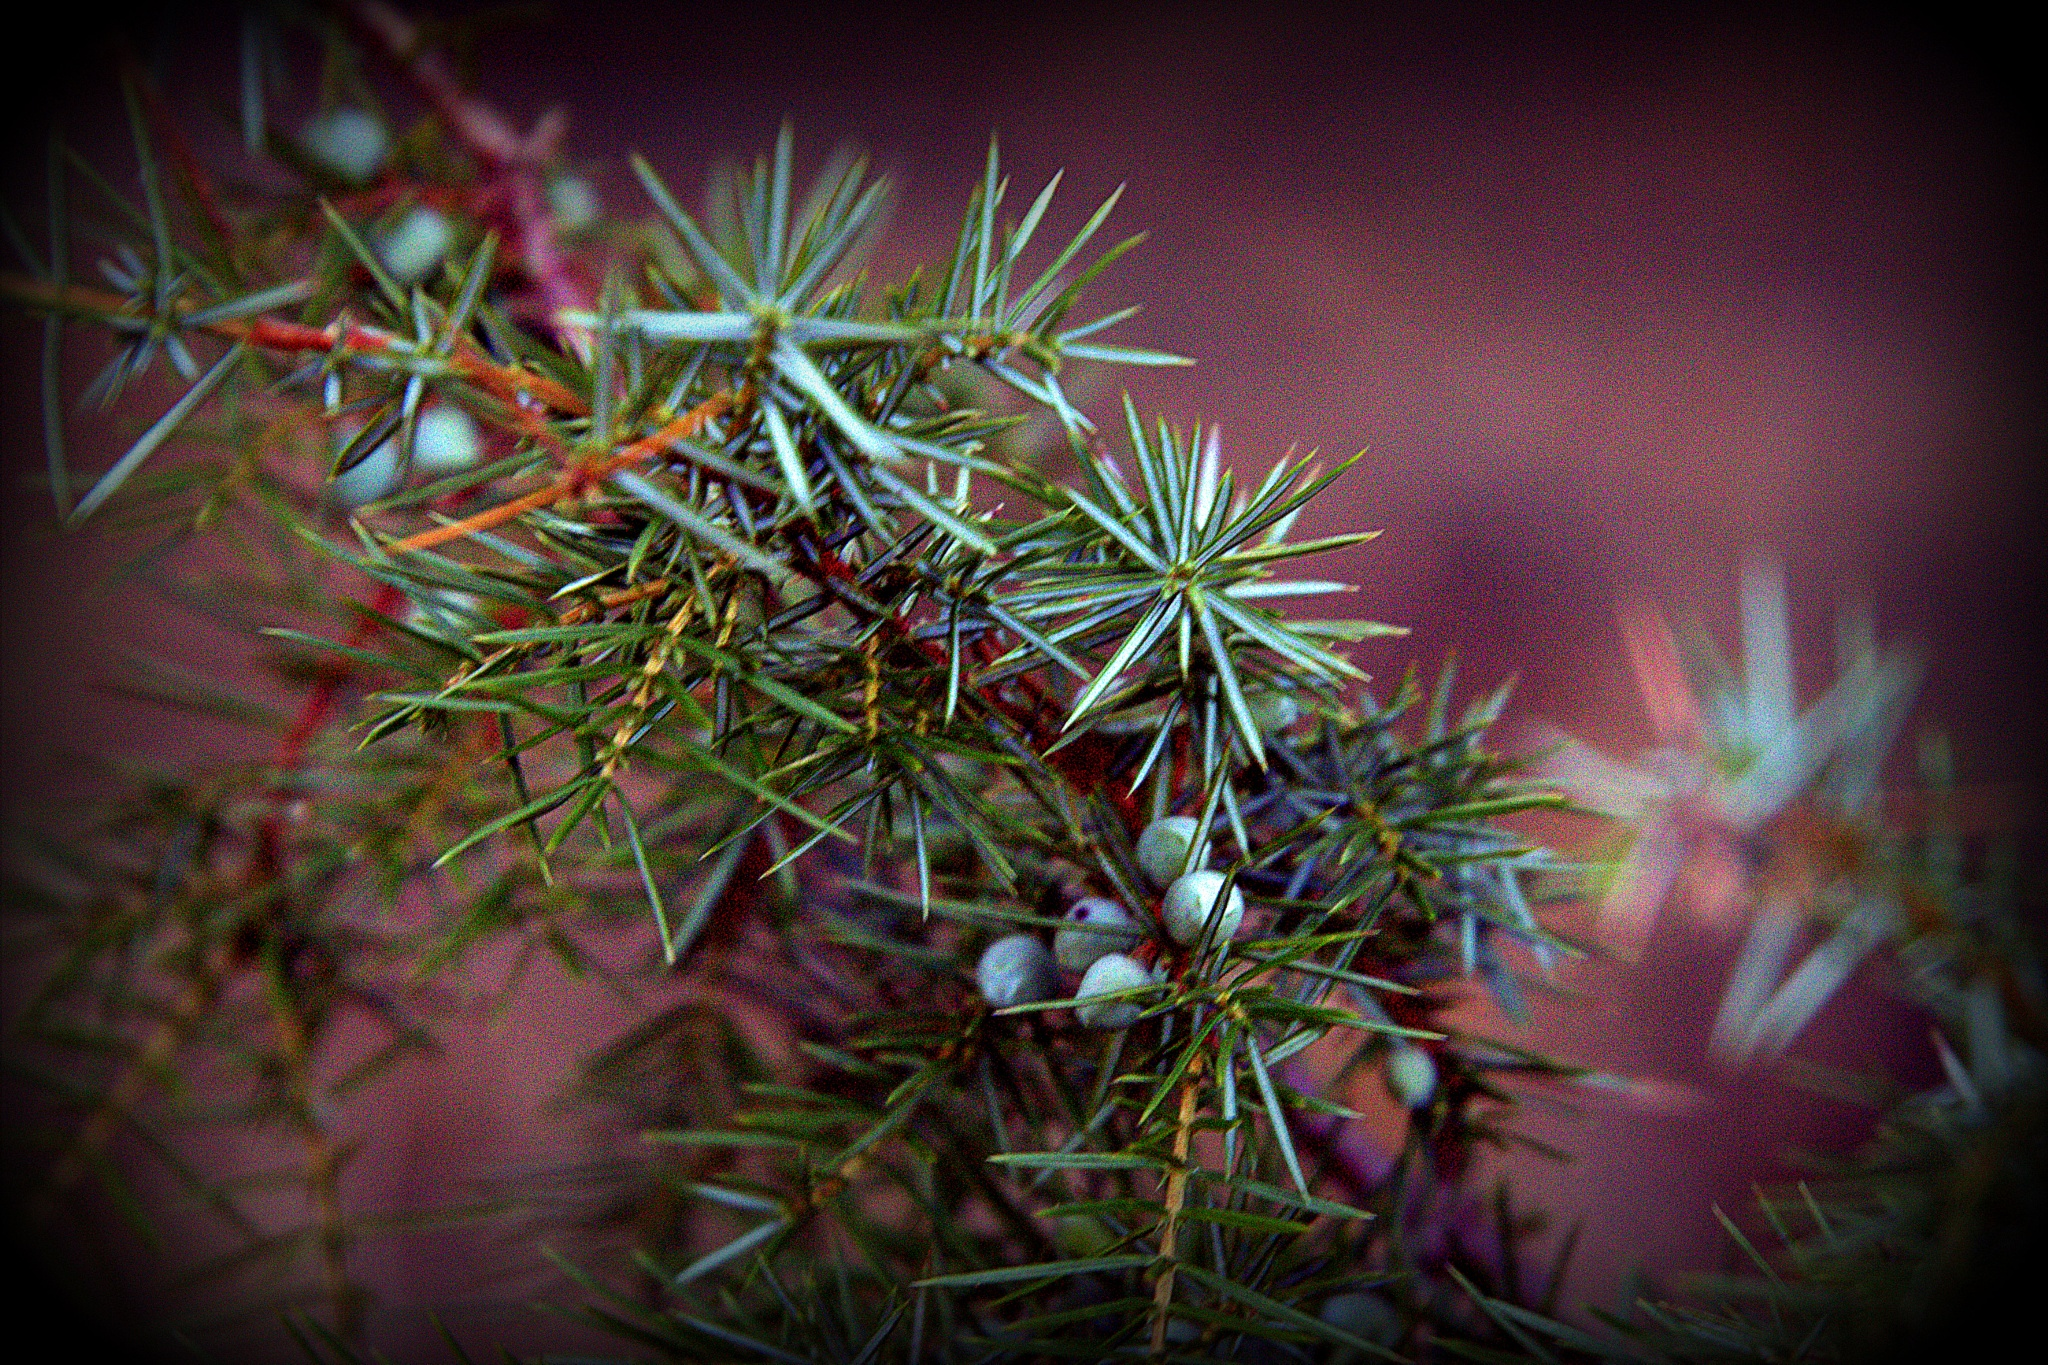 Forest walk...juniper with berries by leopold.brzin